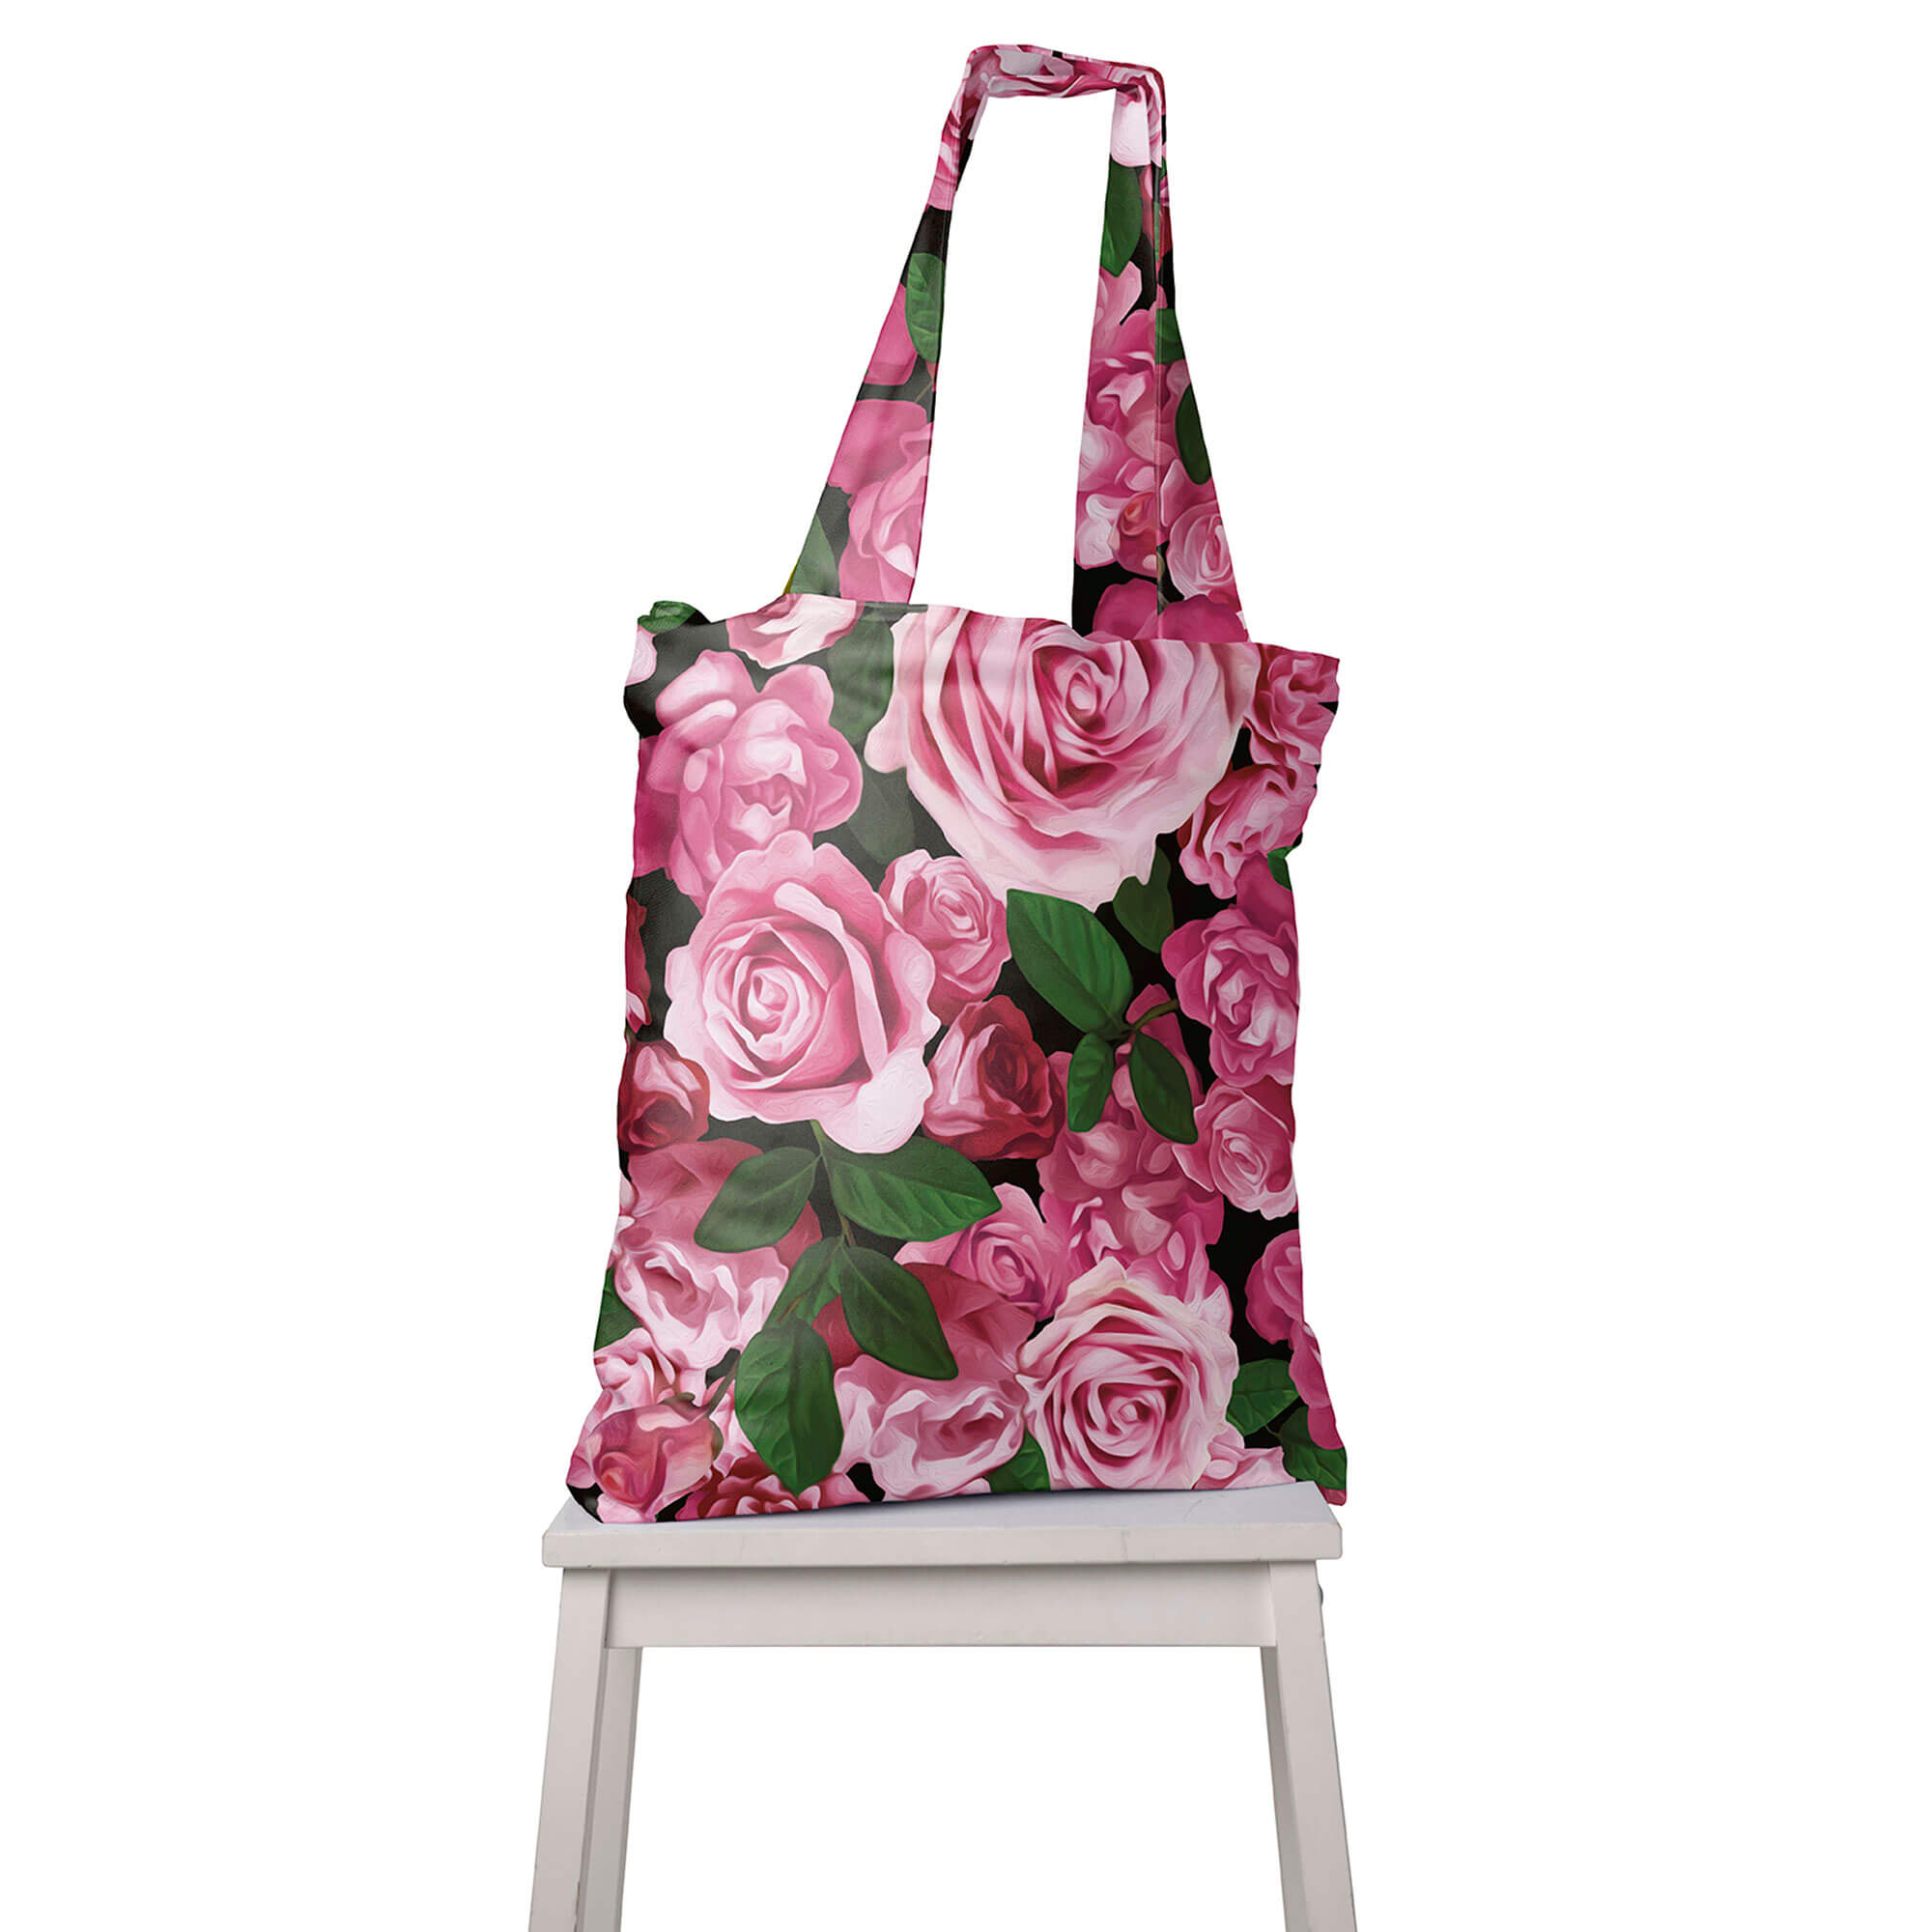 Roses_Torba_2_bag_cacofonia_milano_roses_pink_pinky_flowers